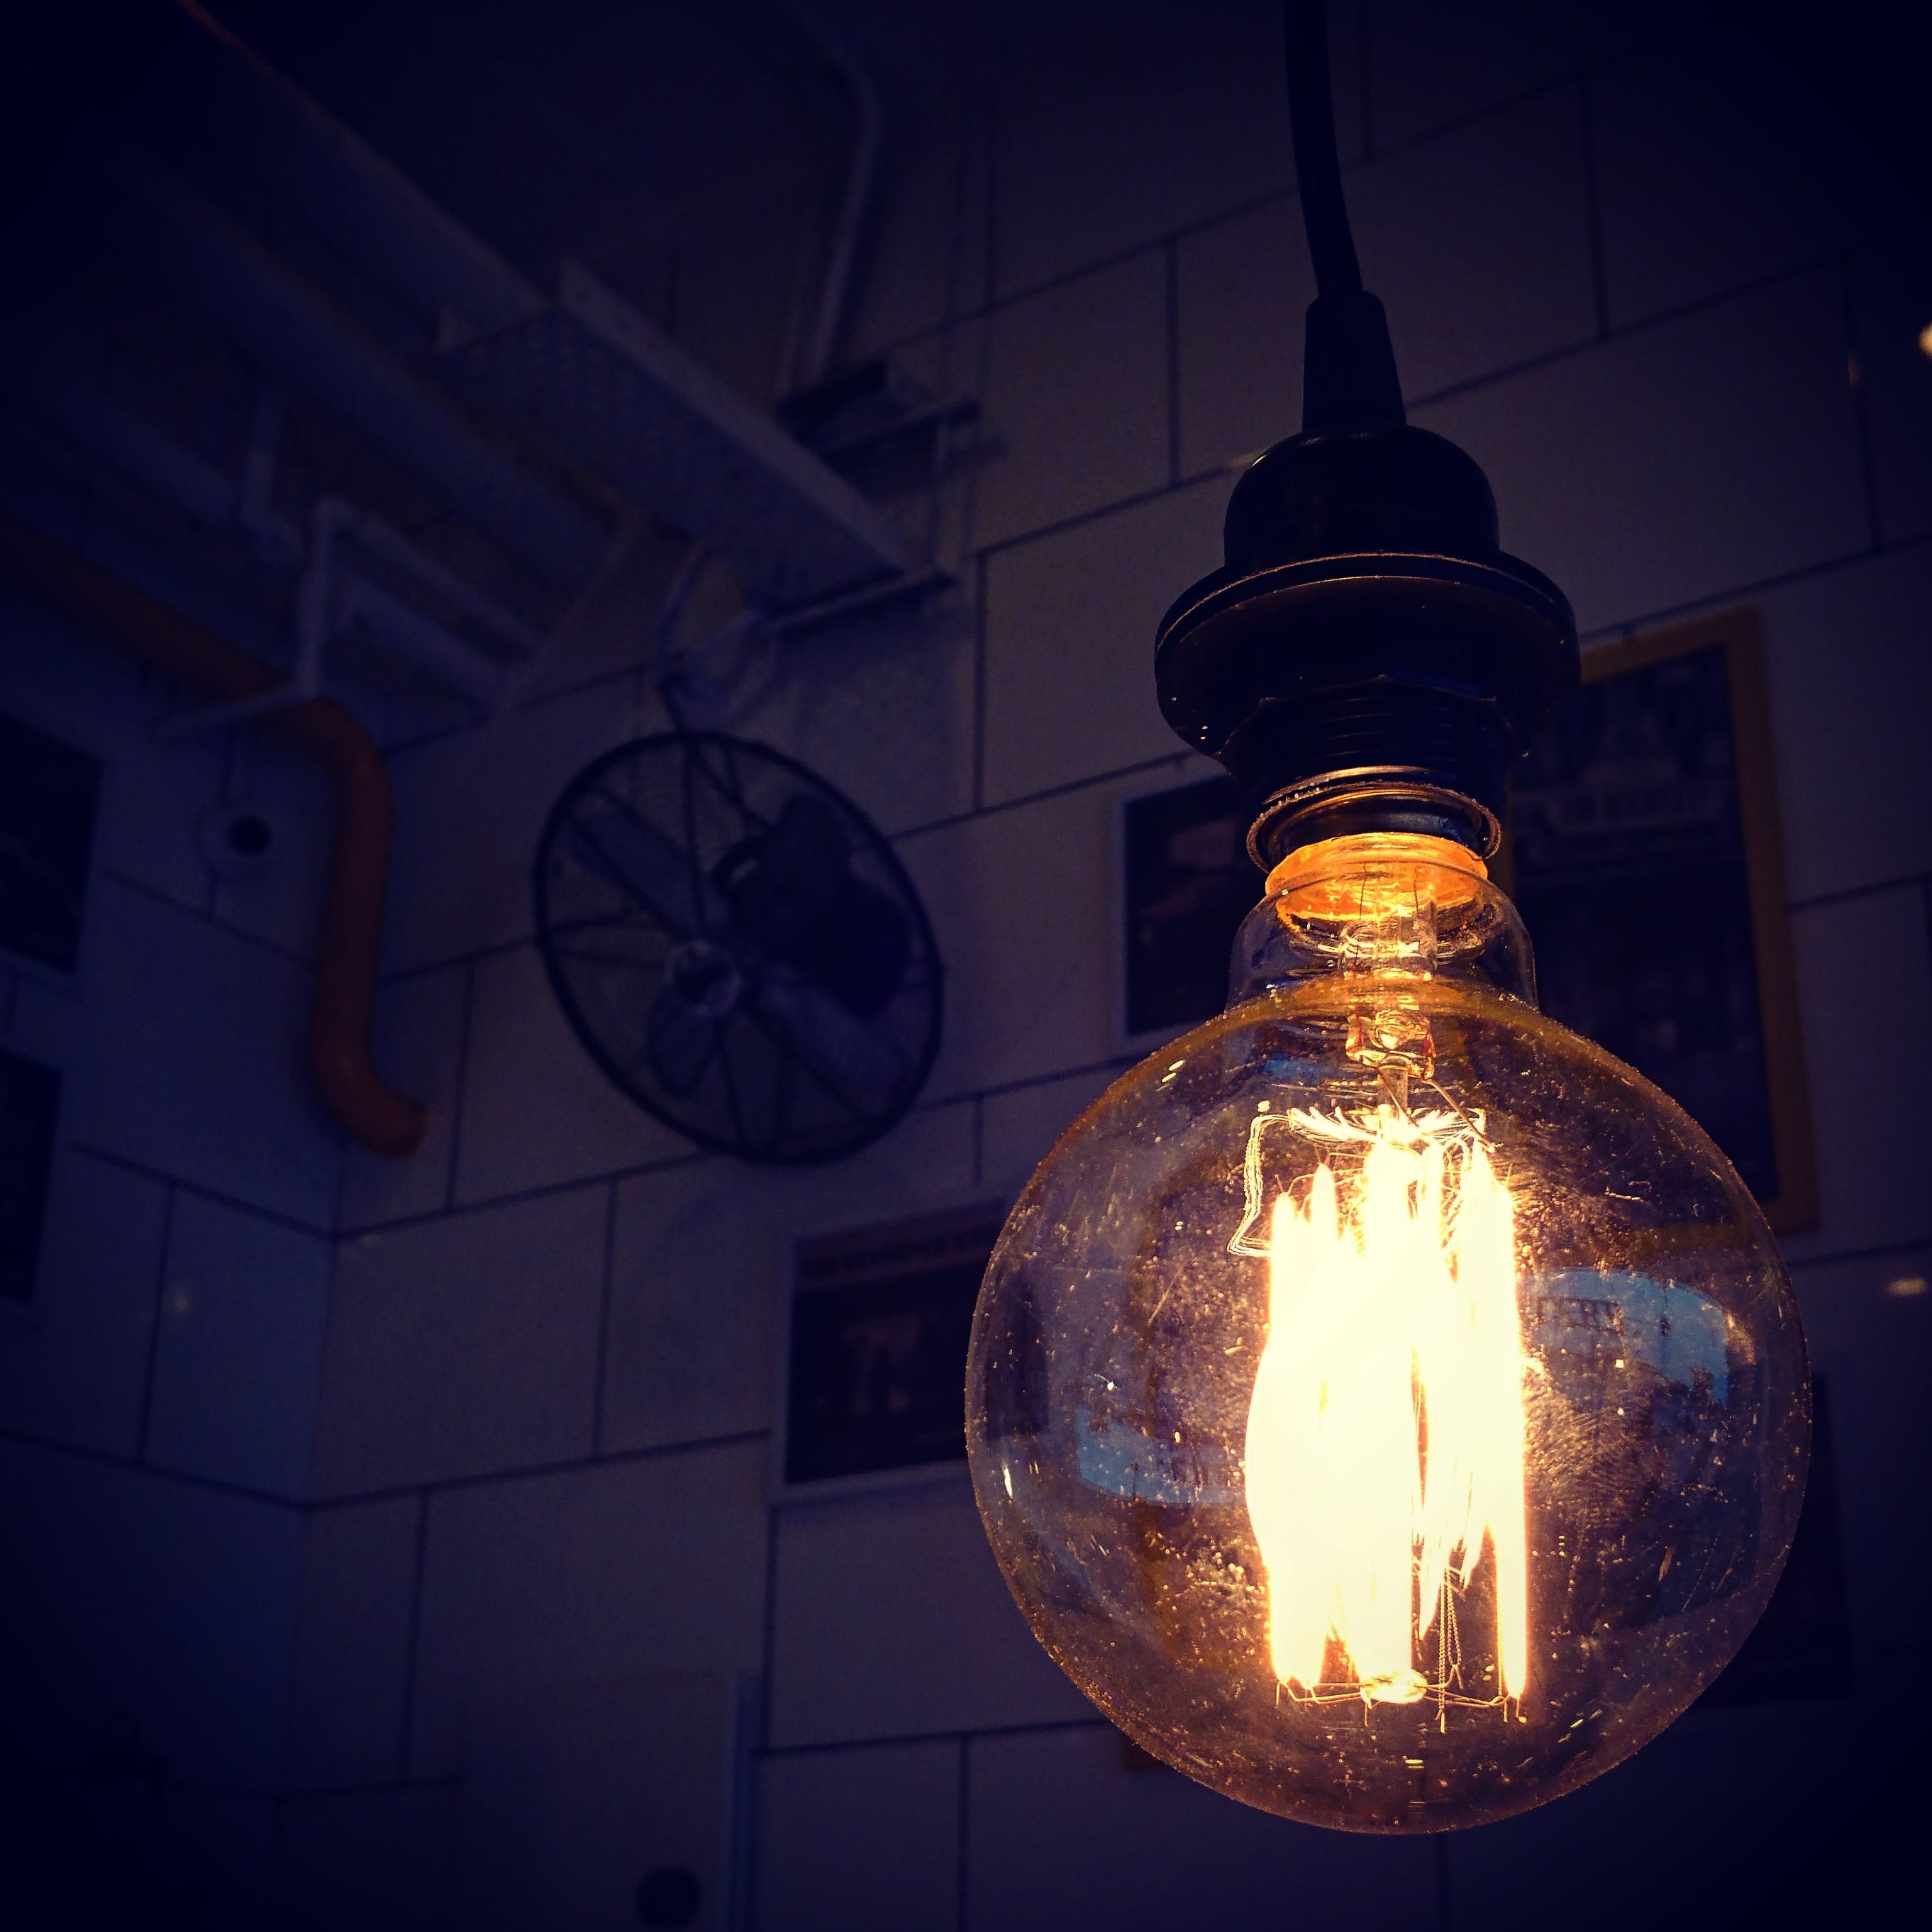 Free stock photo of light, dark, glass, light bulb